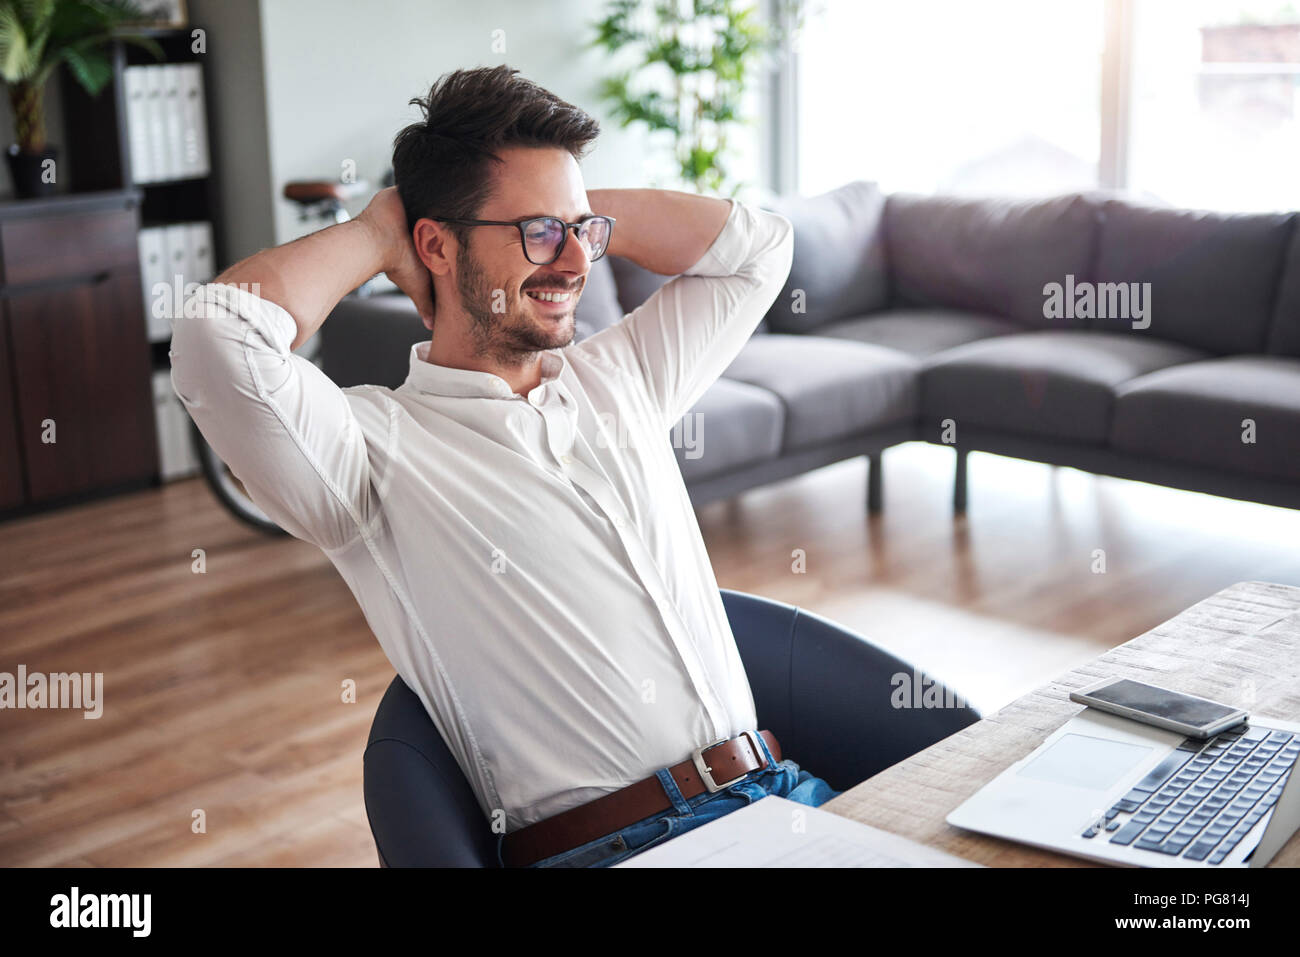 Content businessman sitting at desk at home office Photo Stock